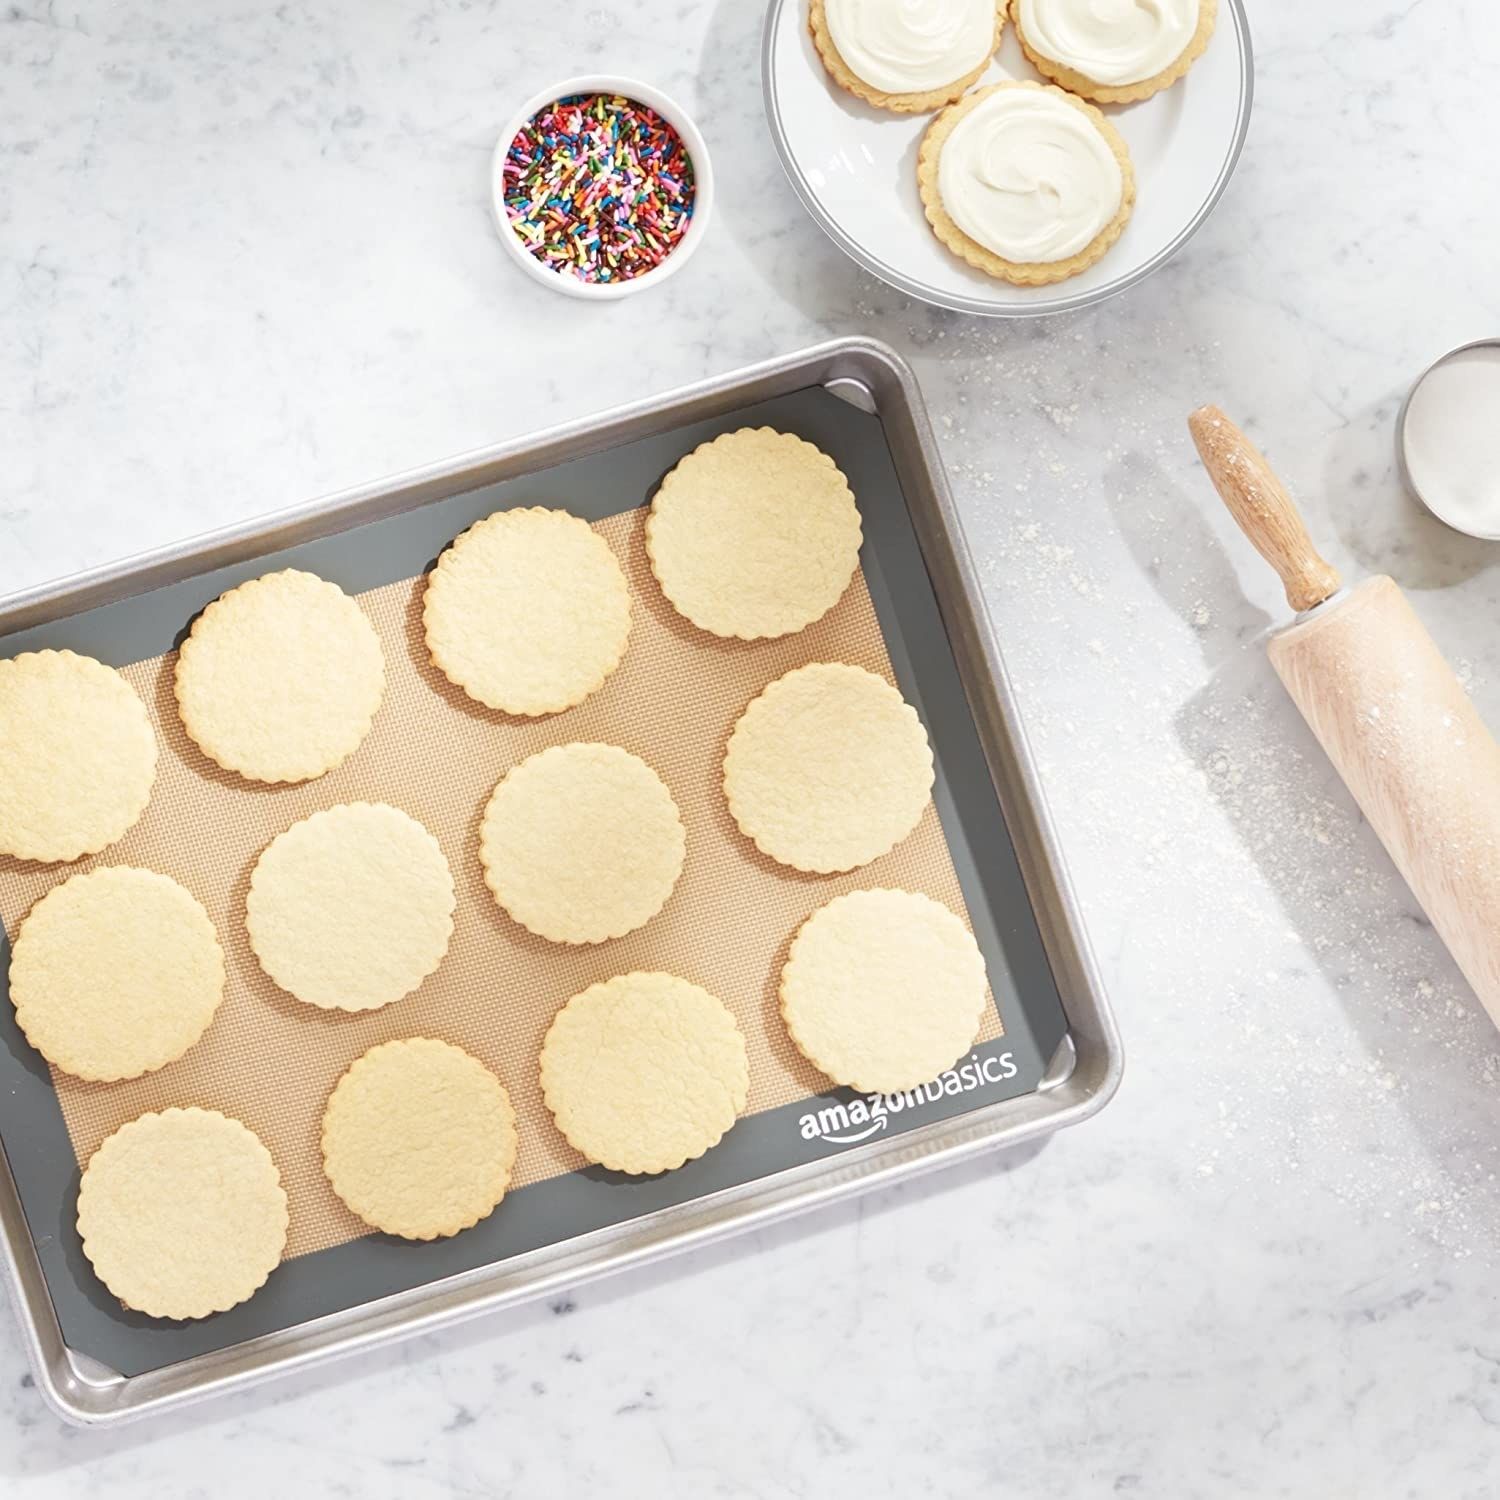 A silicone mat with cookies on it